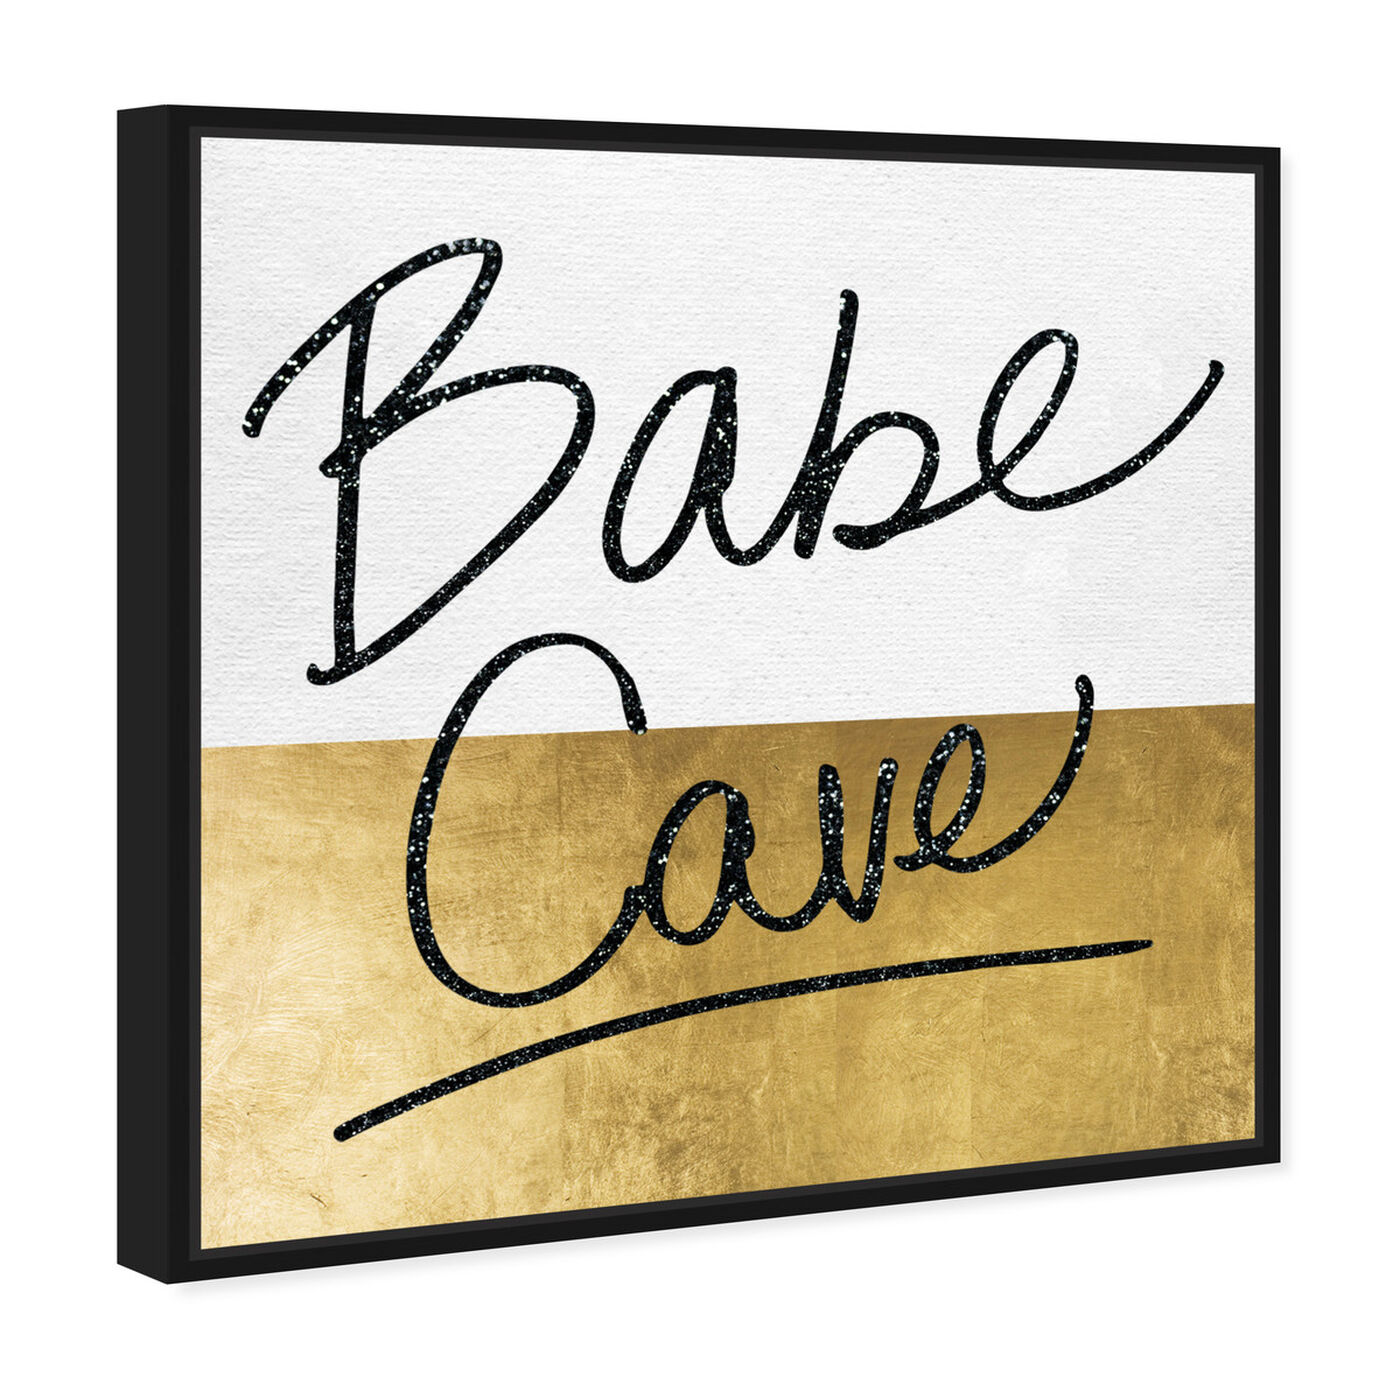 Angled view of Babe Cave featuring typography and quotes and empowered women quotes and sayings art.